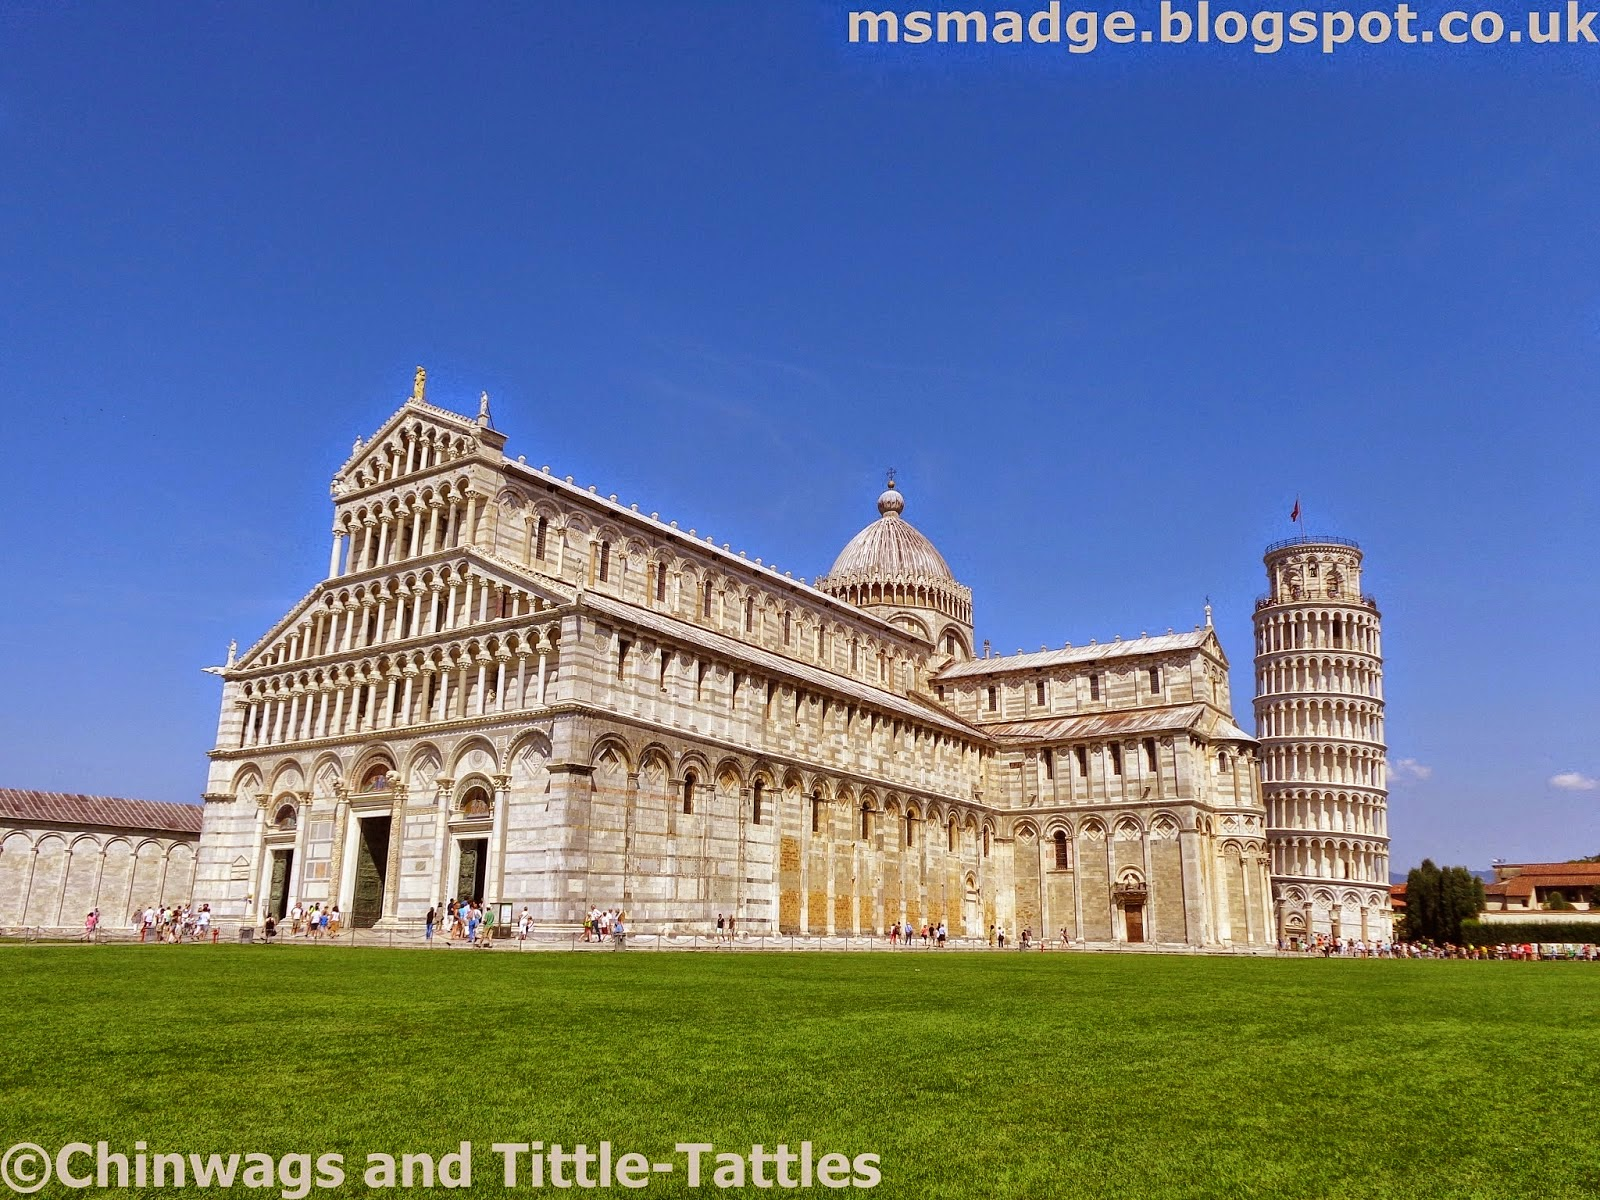 http://msmadge.blogspot.co.uk/2014/08/pisa-other-than-leaning-tower.html